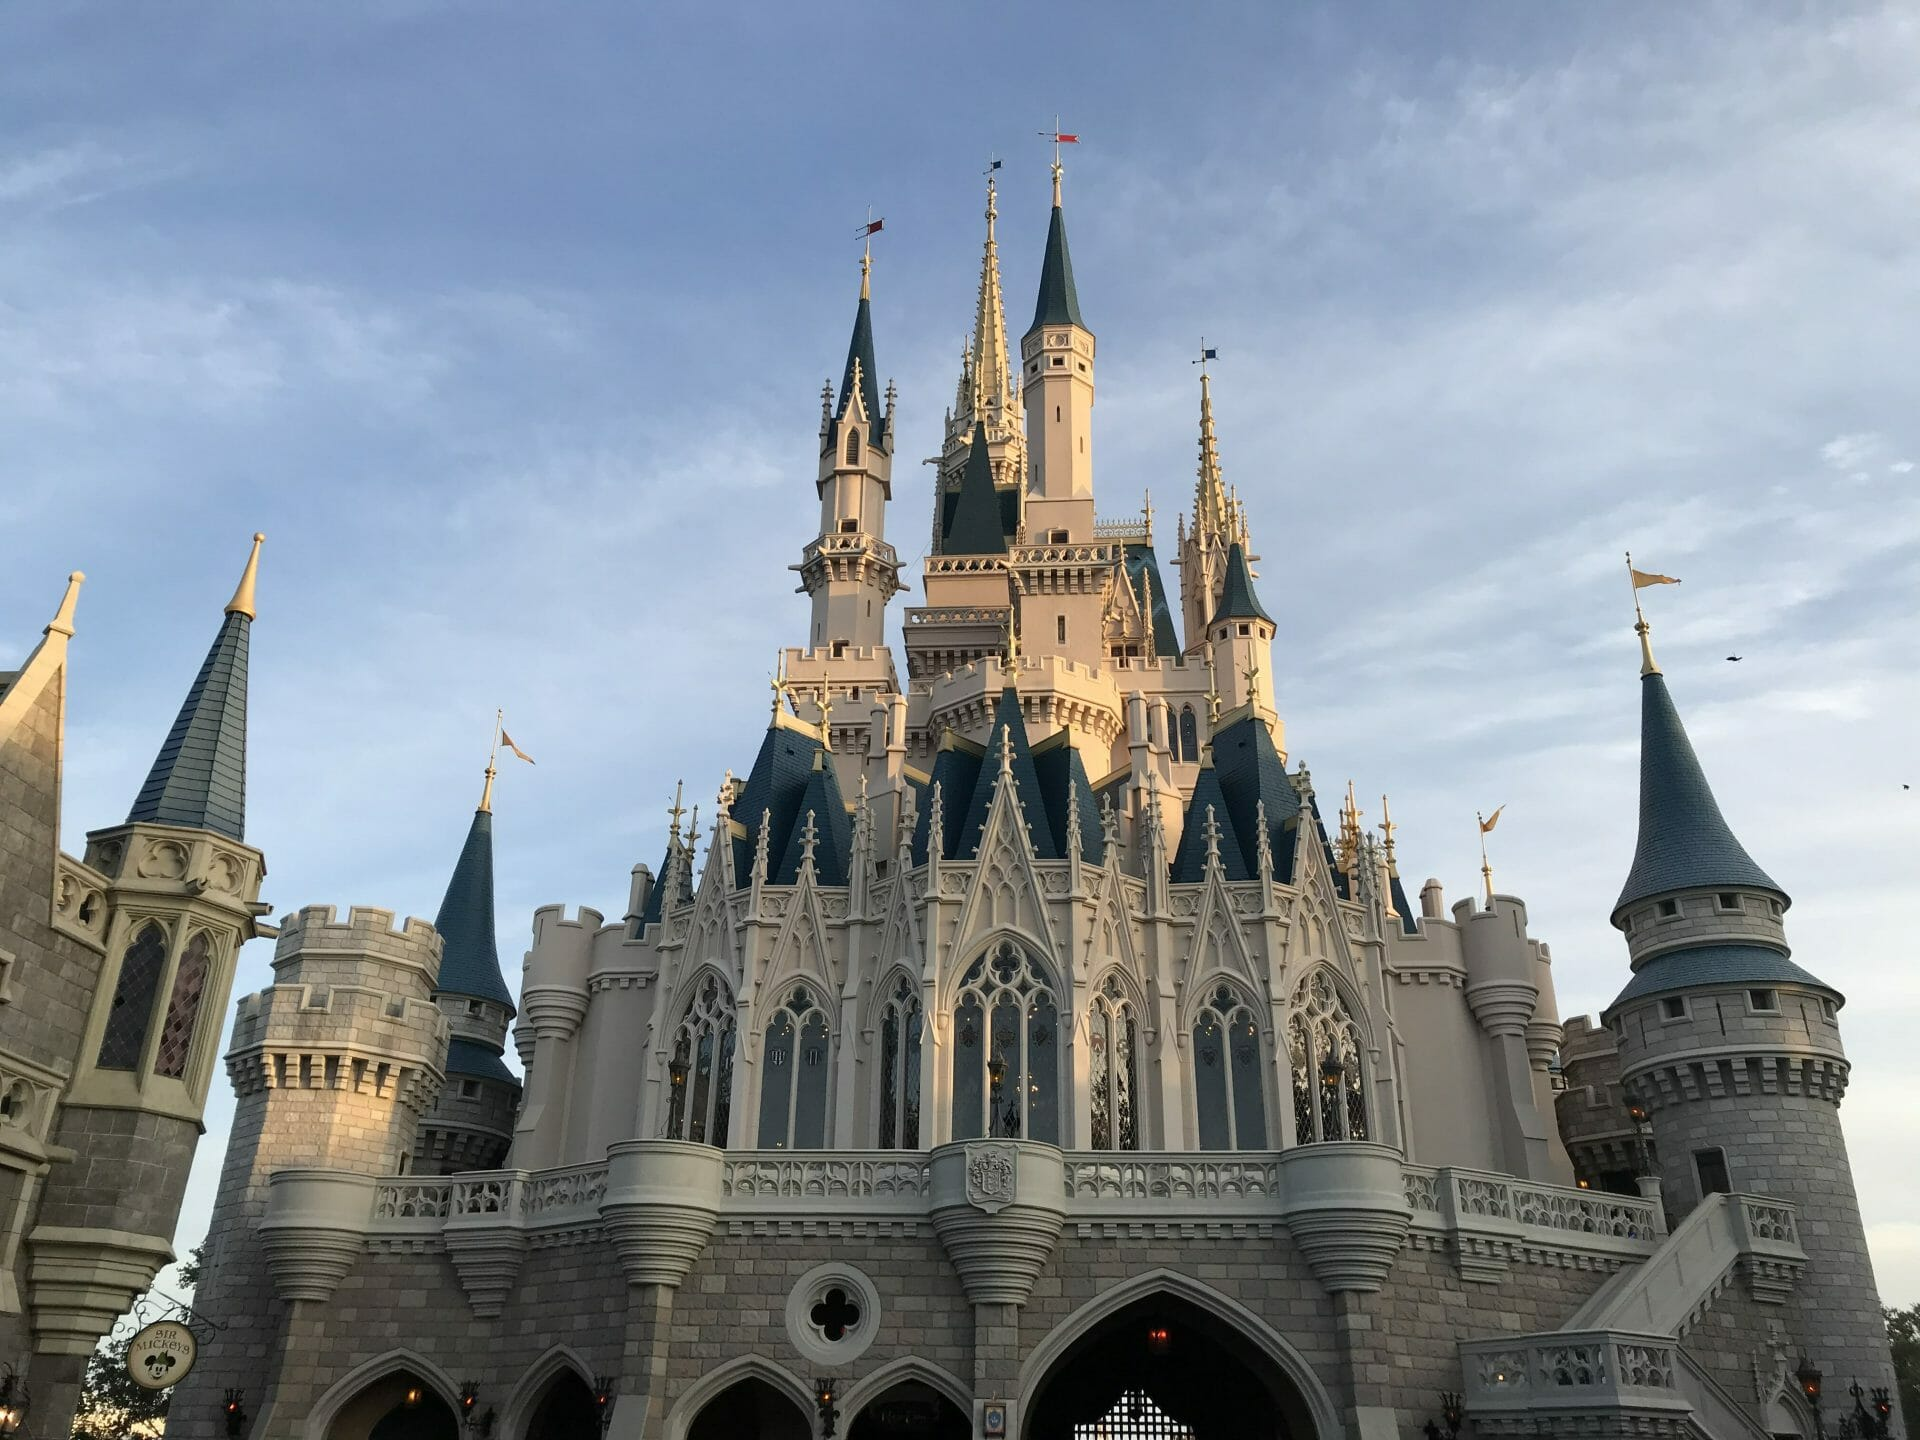 20 Things You Can Do at Walt Disney World That Are Free or Low Cost